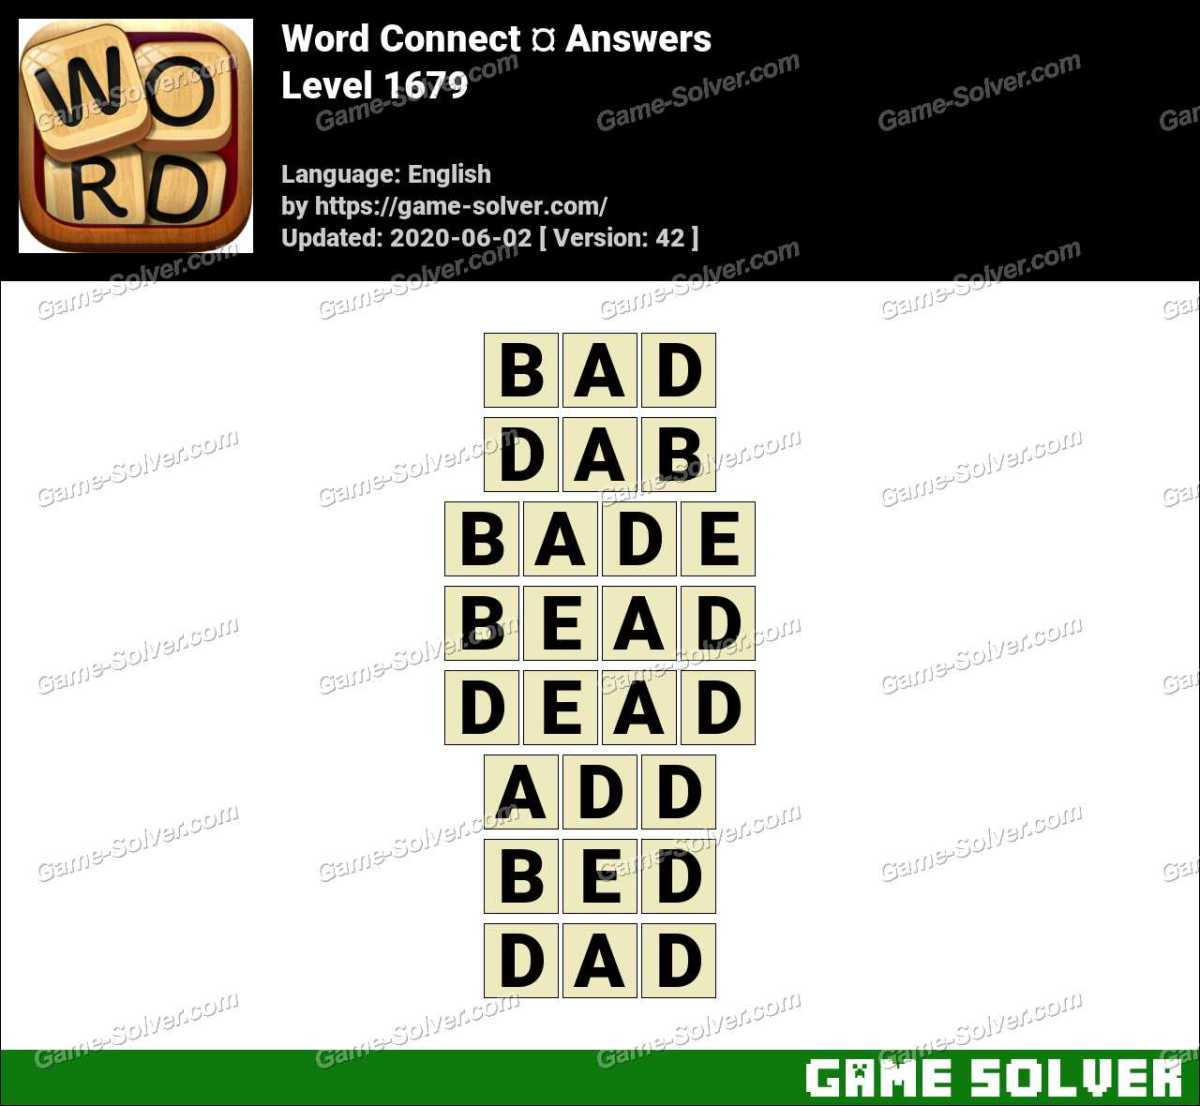 Word Connect Level 1679 Answers